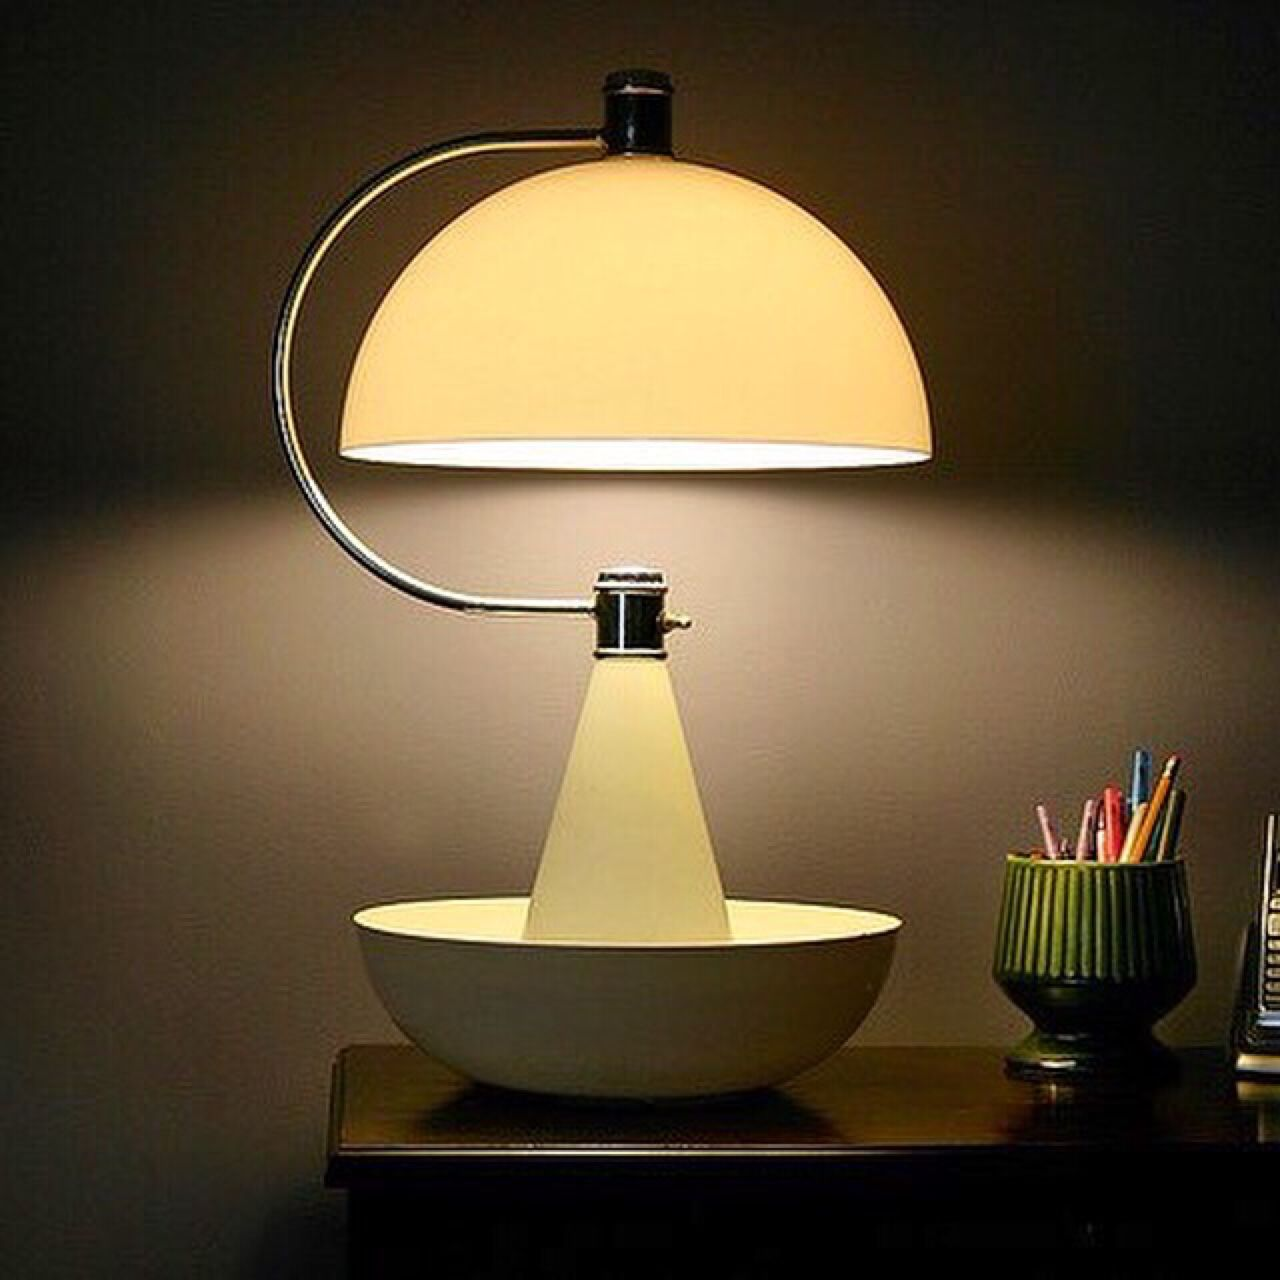 Good Night … Timeless Classic Bauhaus Lamp bauhaus